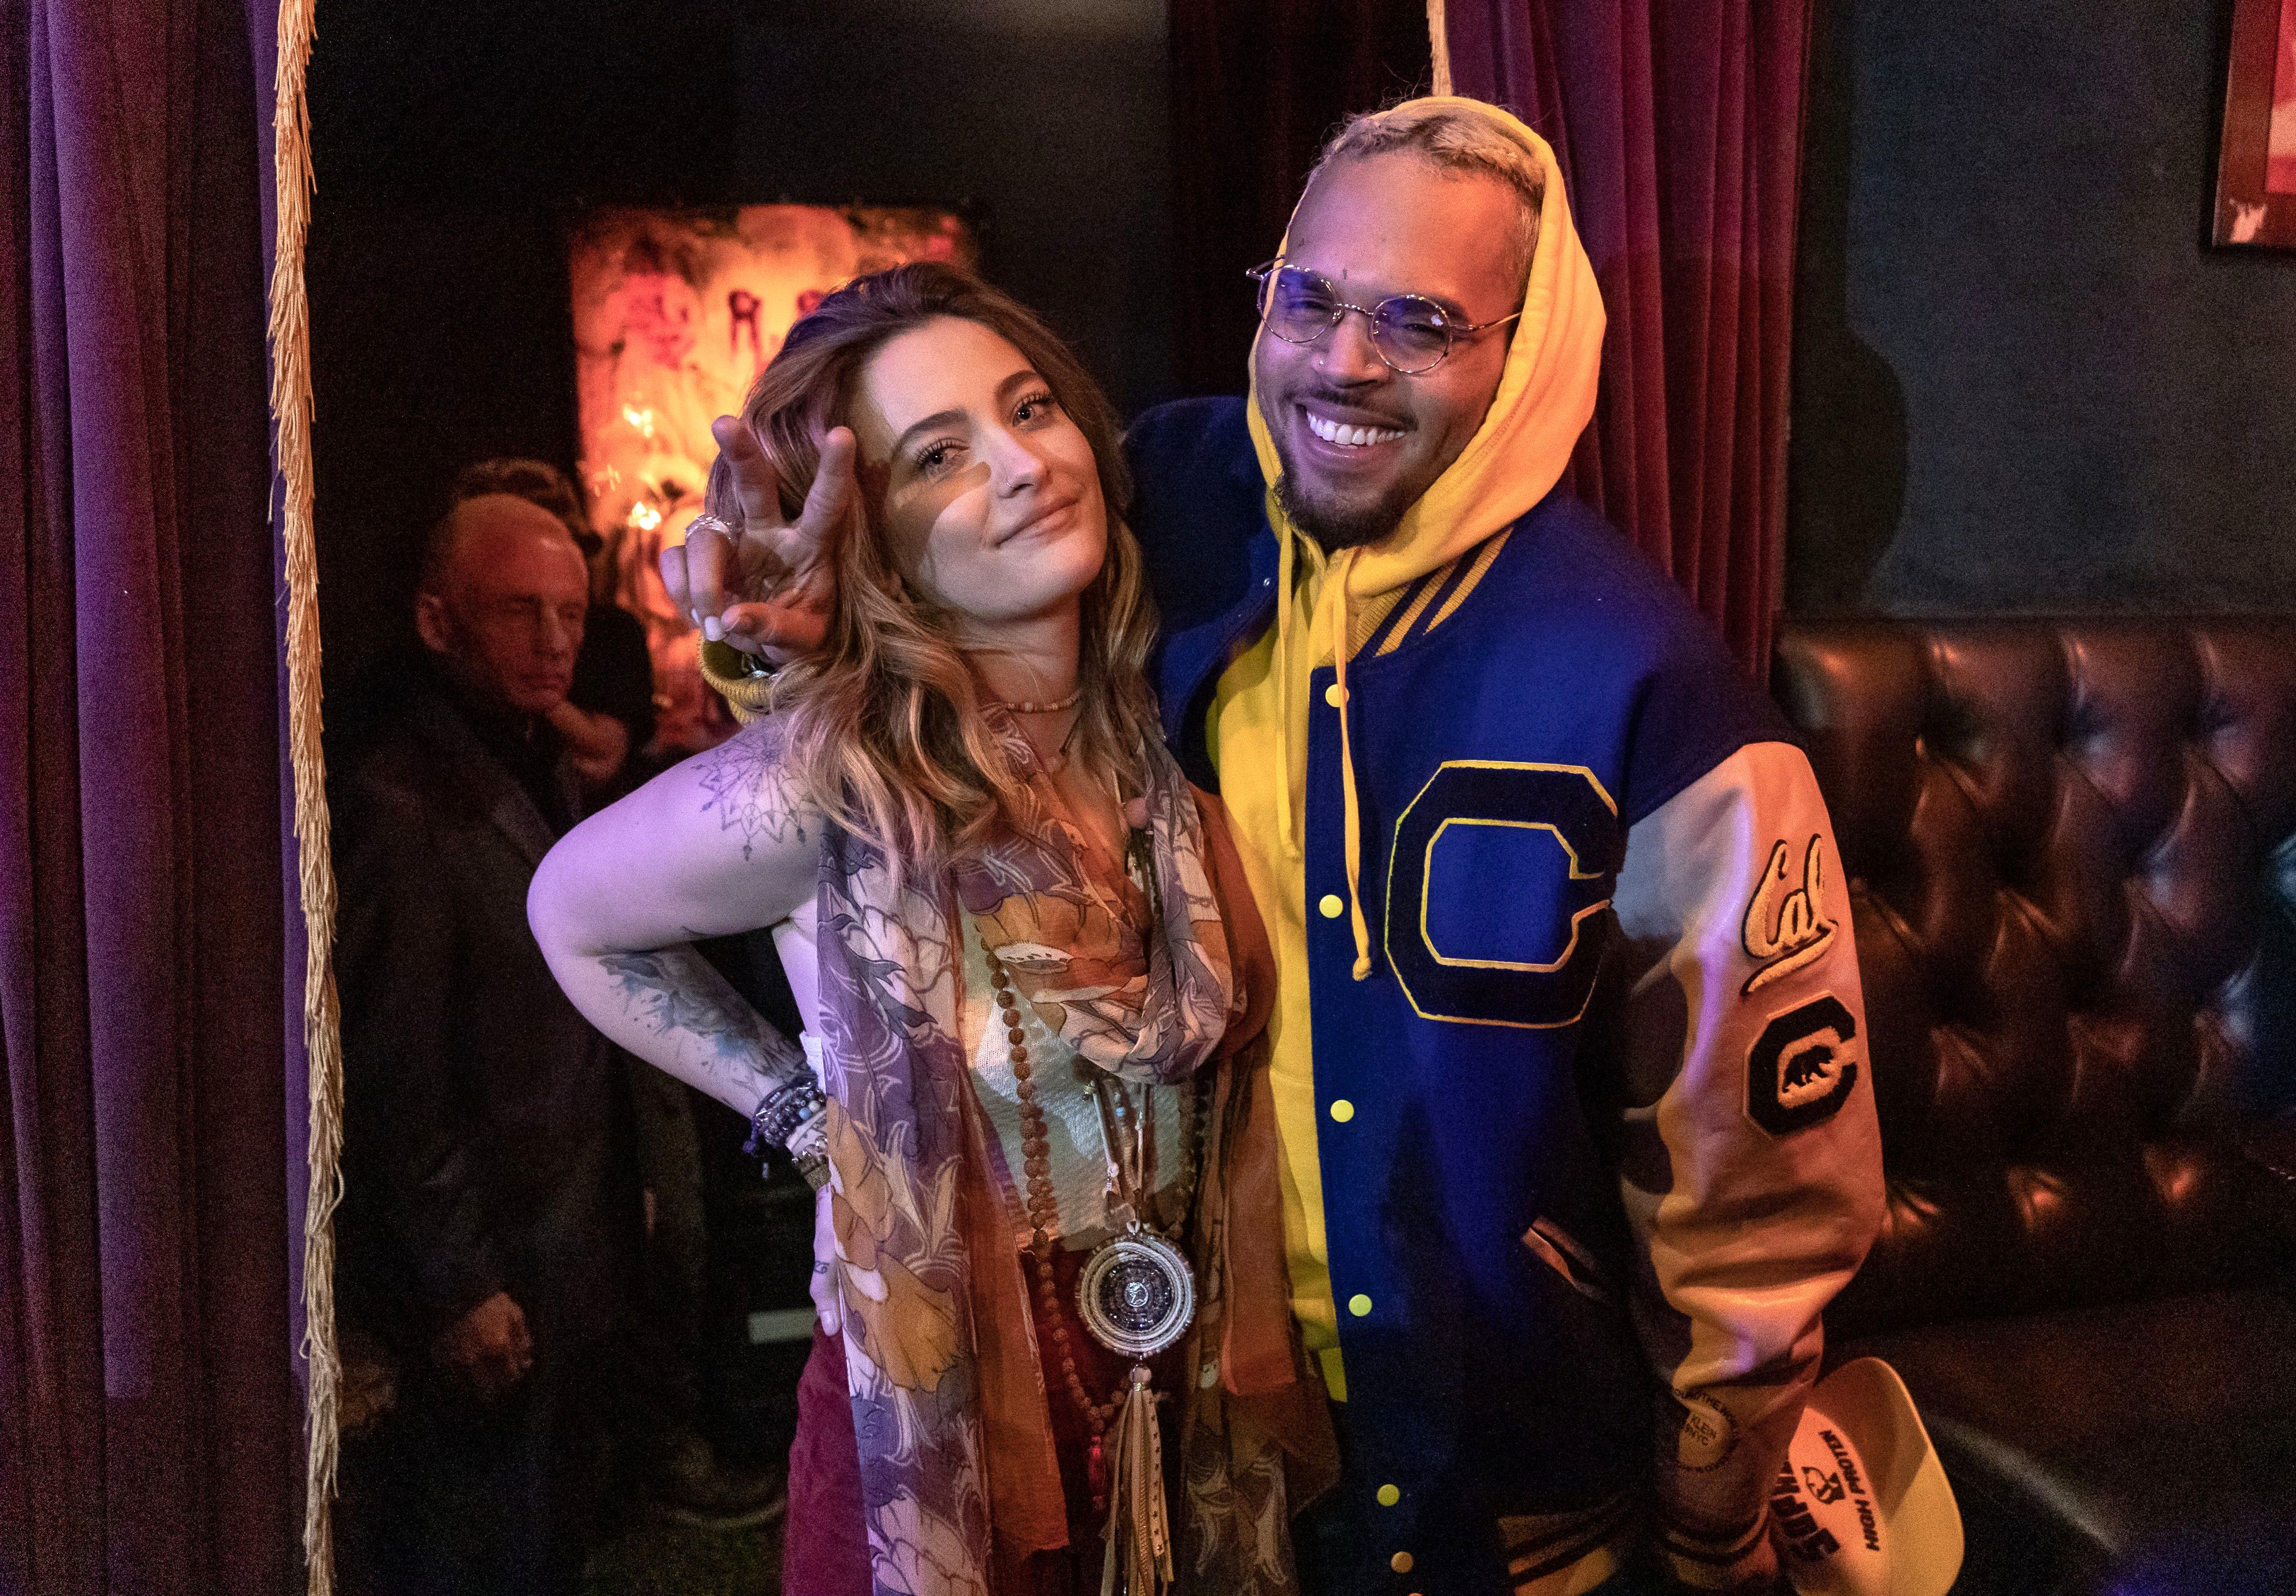 Paris Jackson and Chris Brown appear at The Soundflowers concert in Los Angeles on March 30, 2019.